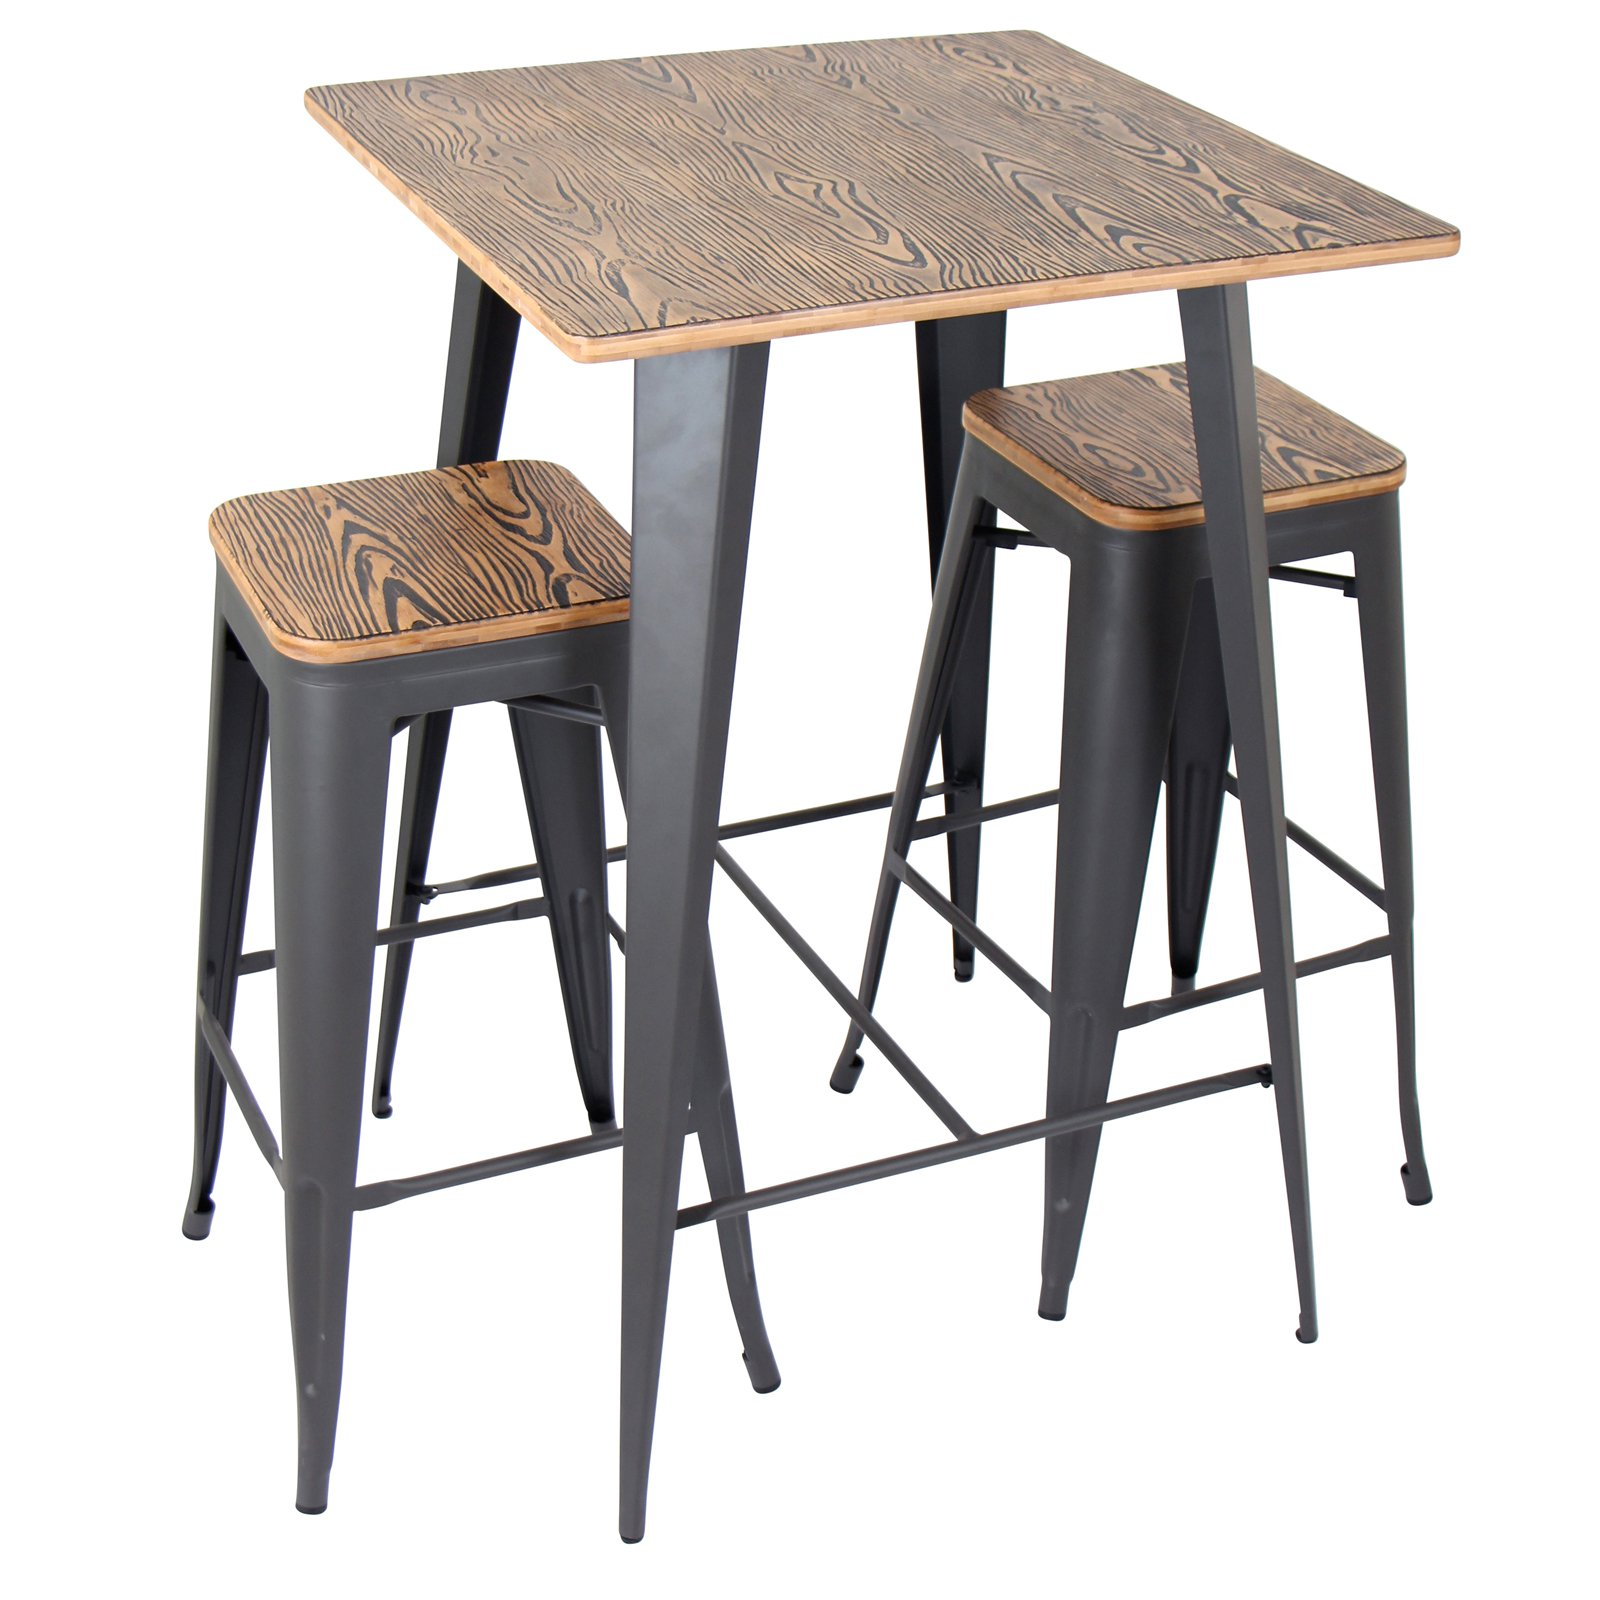 Oregon 3 Piece Industrial Pub Set In Grey And Brown By LumiSource    Walmart.com